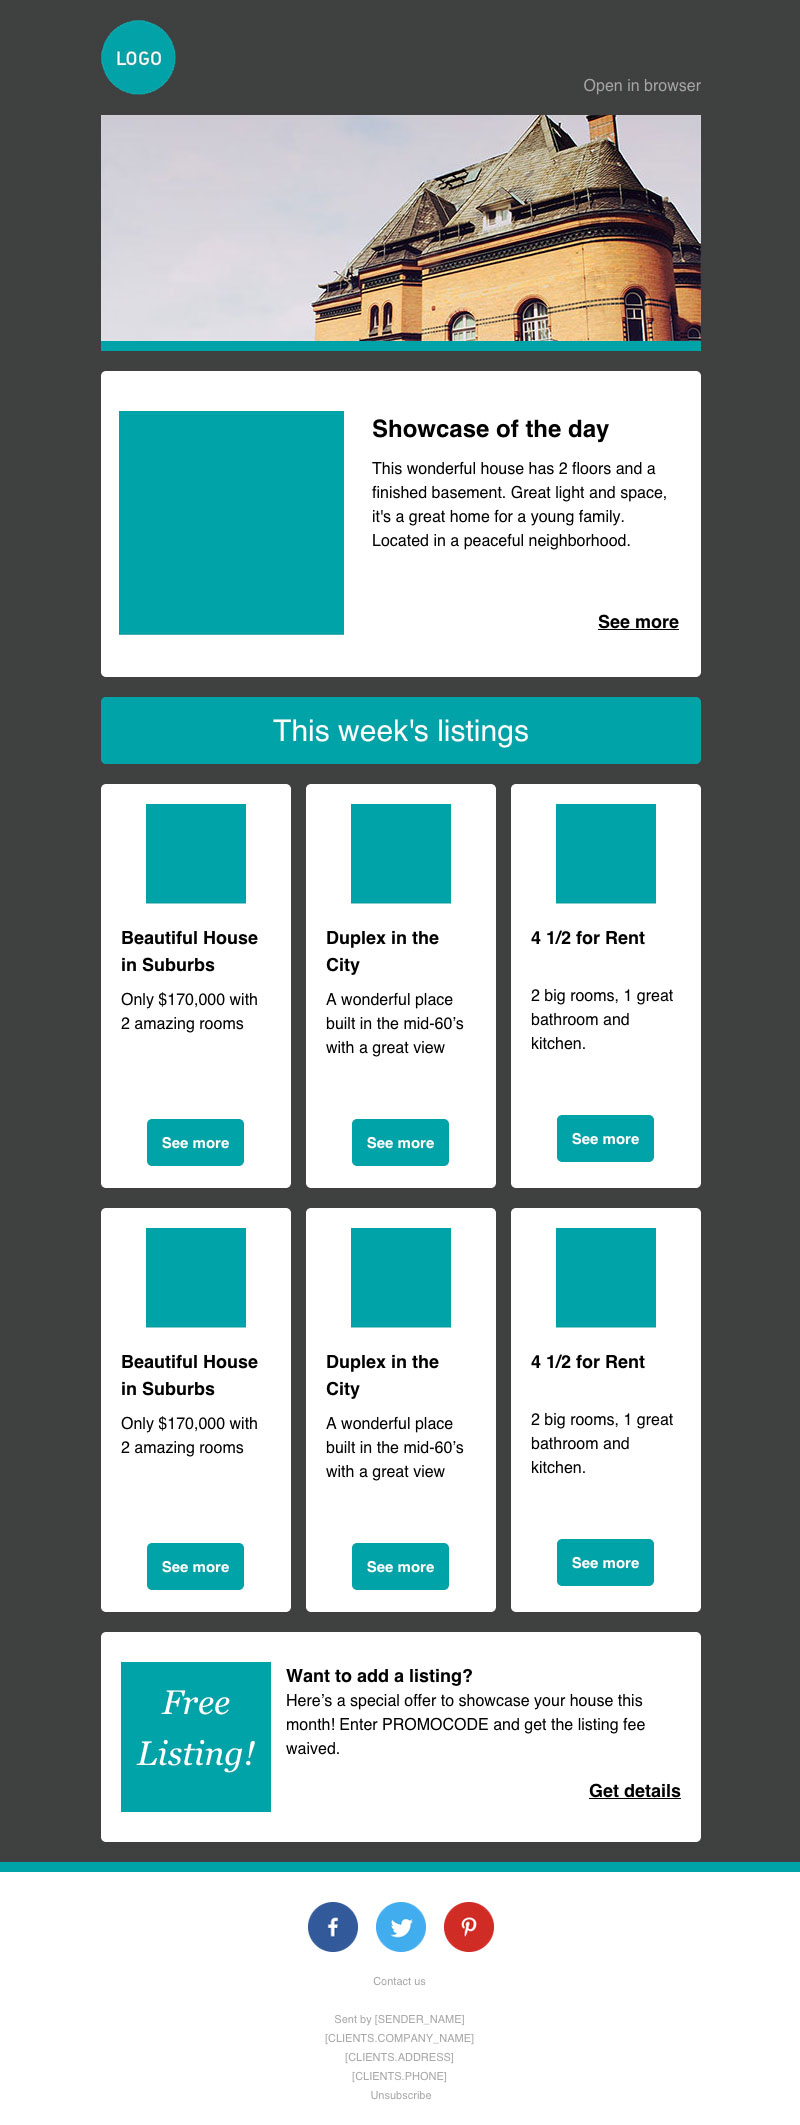 free school newsletter templates   Physic.minimalistics.co